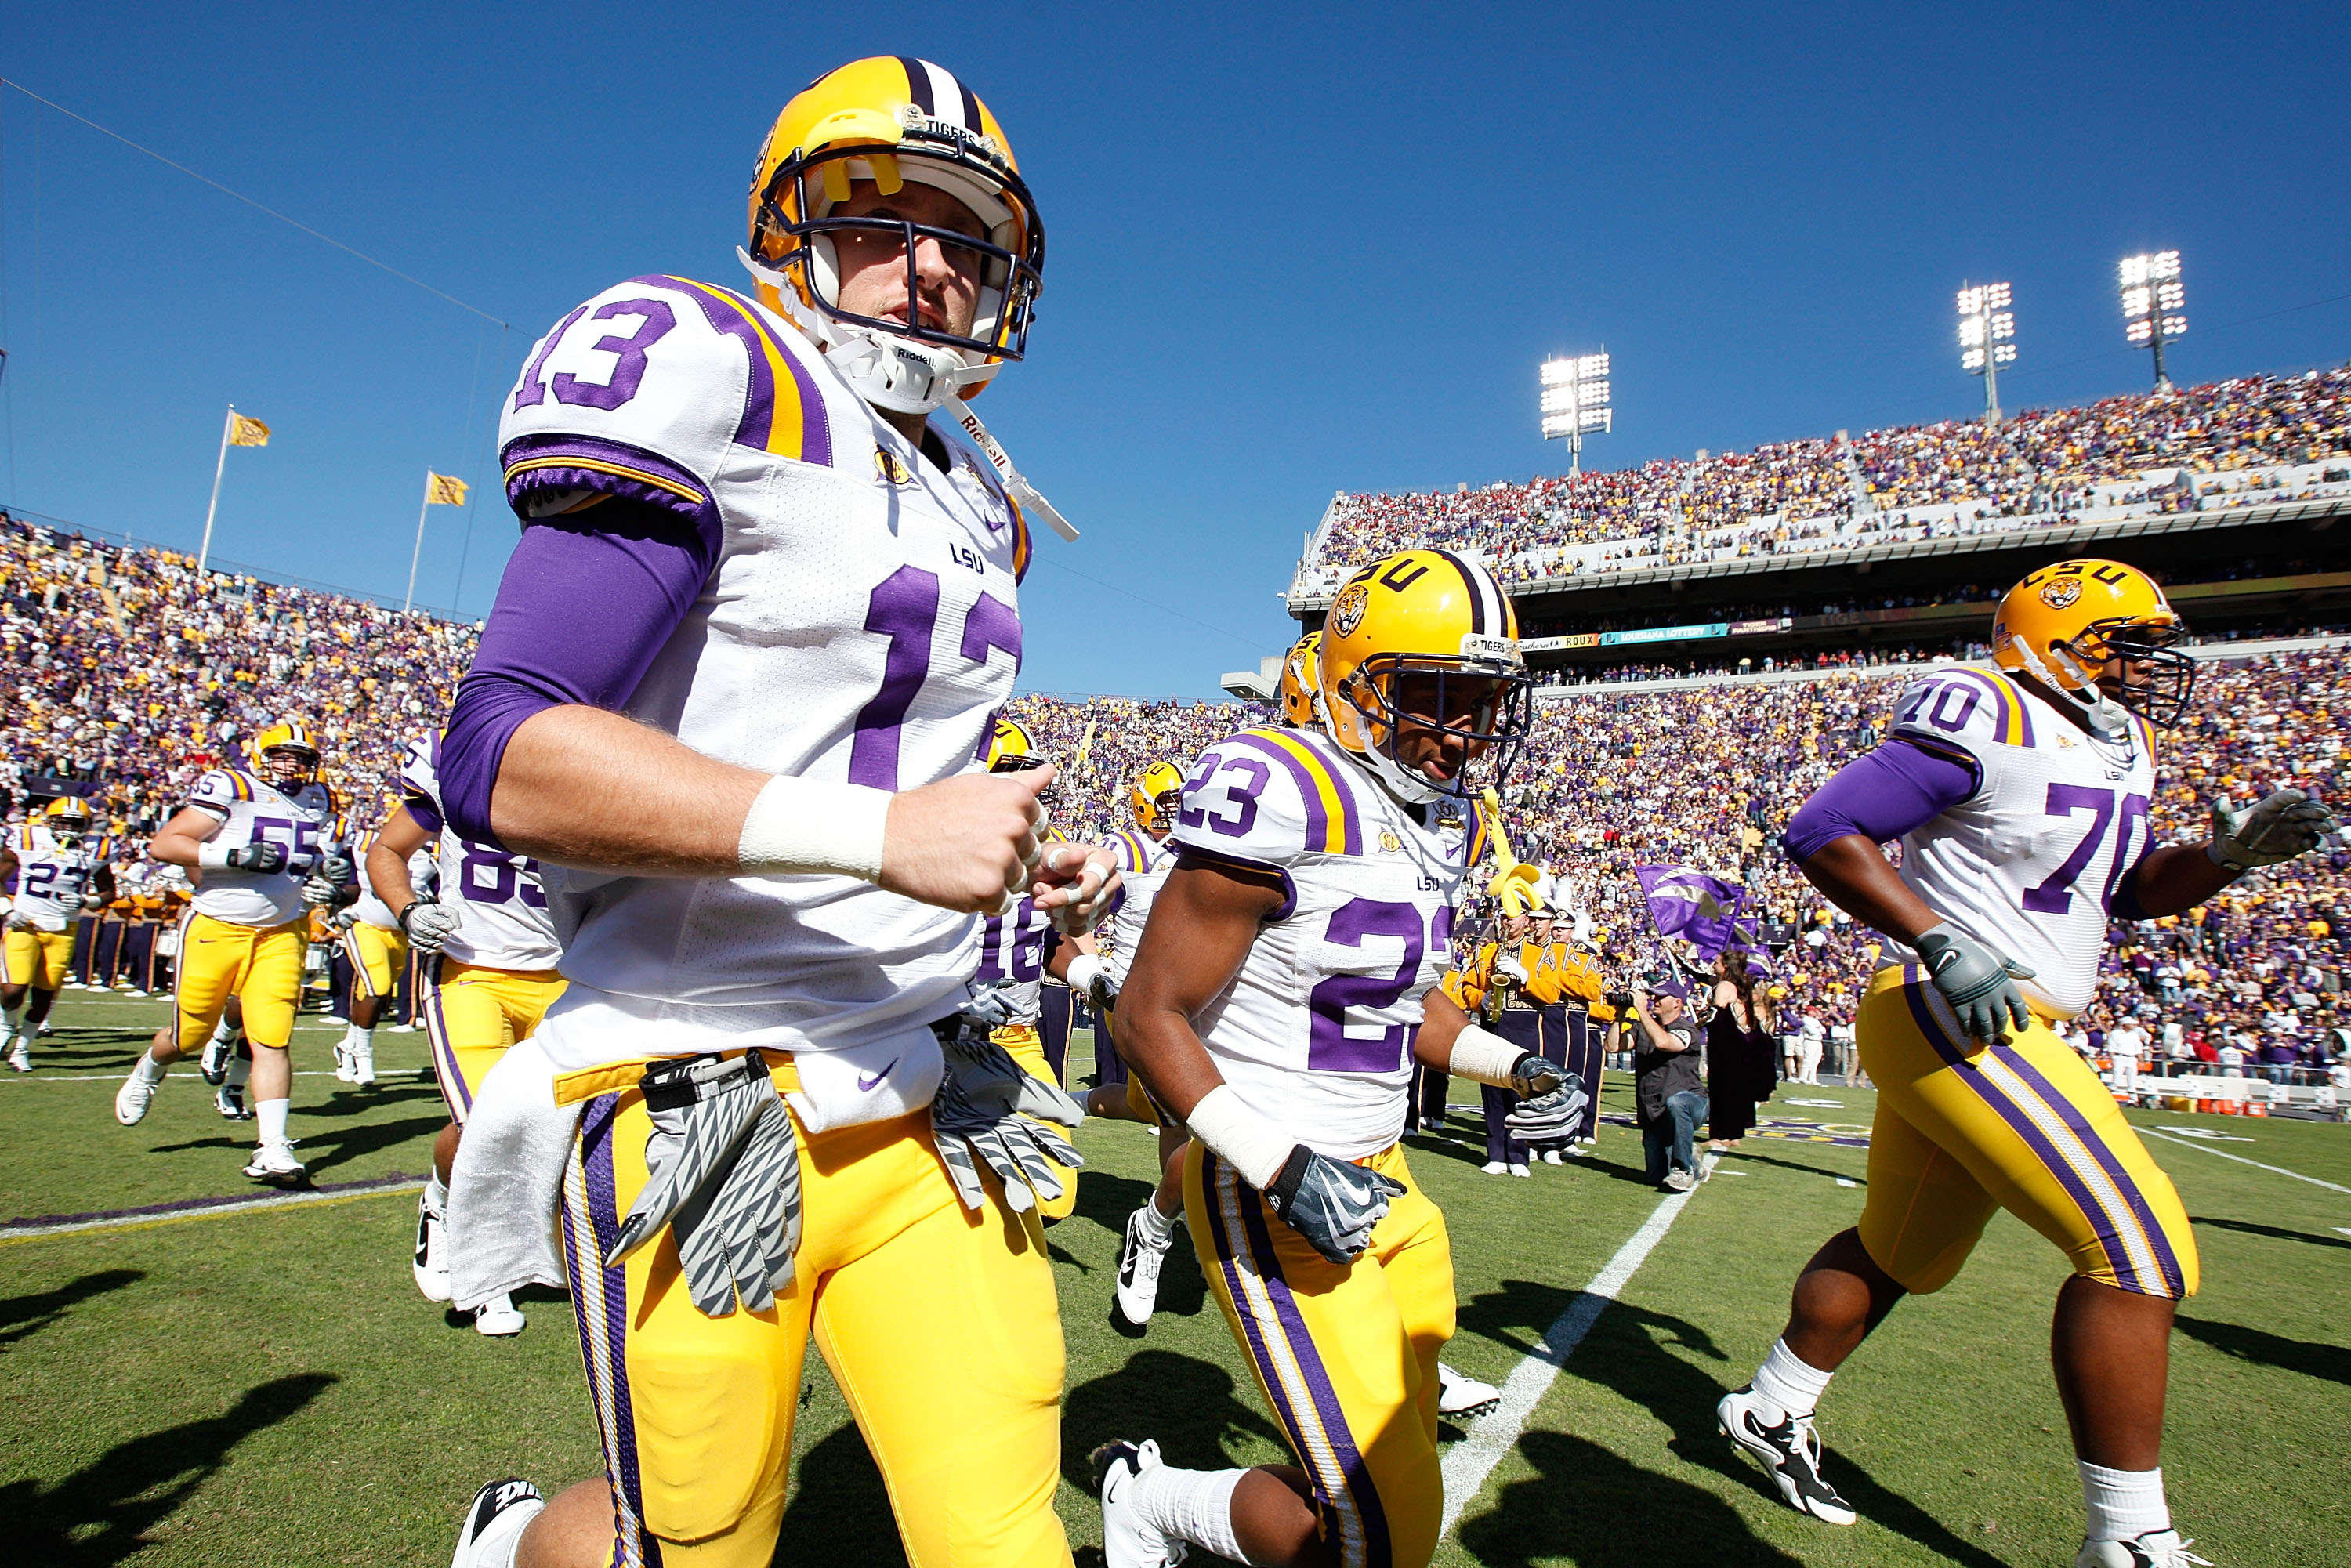 BATON ROUGE, LA - NOVEMBER 06:  Members of the Louisiana State University Tigers run onto the field during pregame before playing the Alabama Crimson Tide  at Tiger Stadium on November 6, 2010 in Baton Rouge, Louisiana.  (Photo by Chris Graythen/Getty Ima